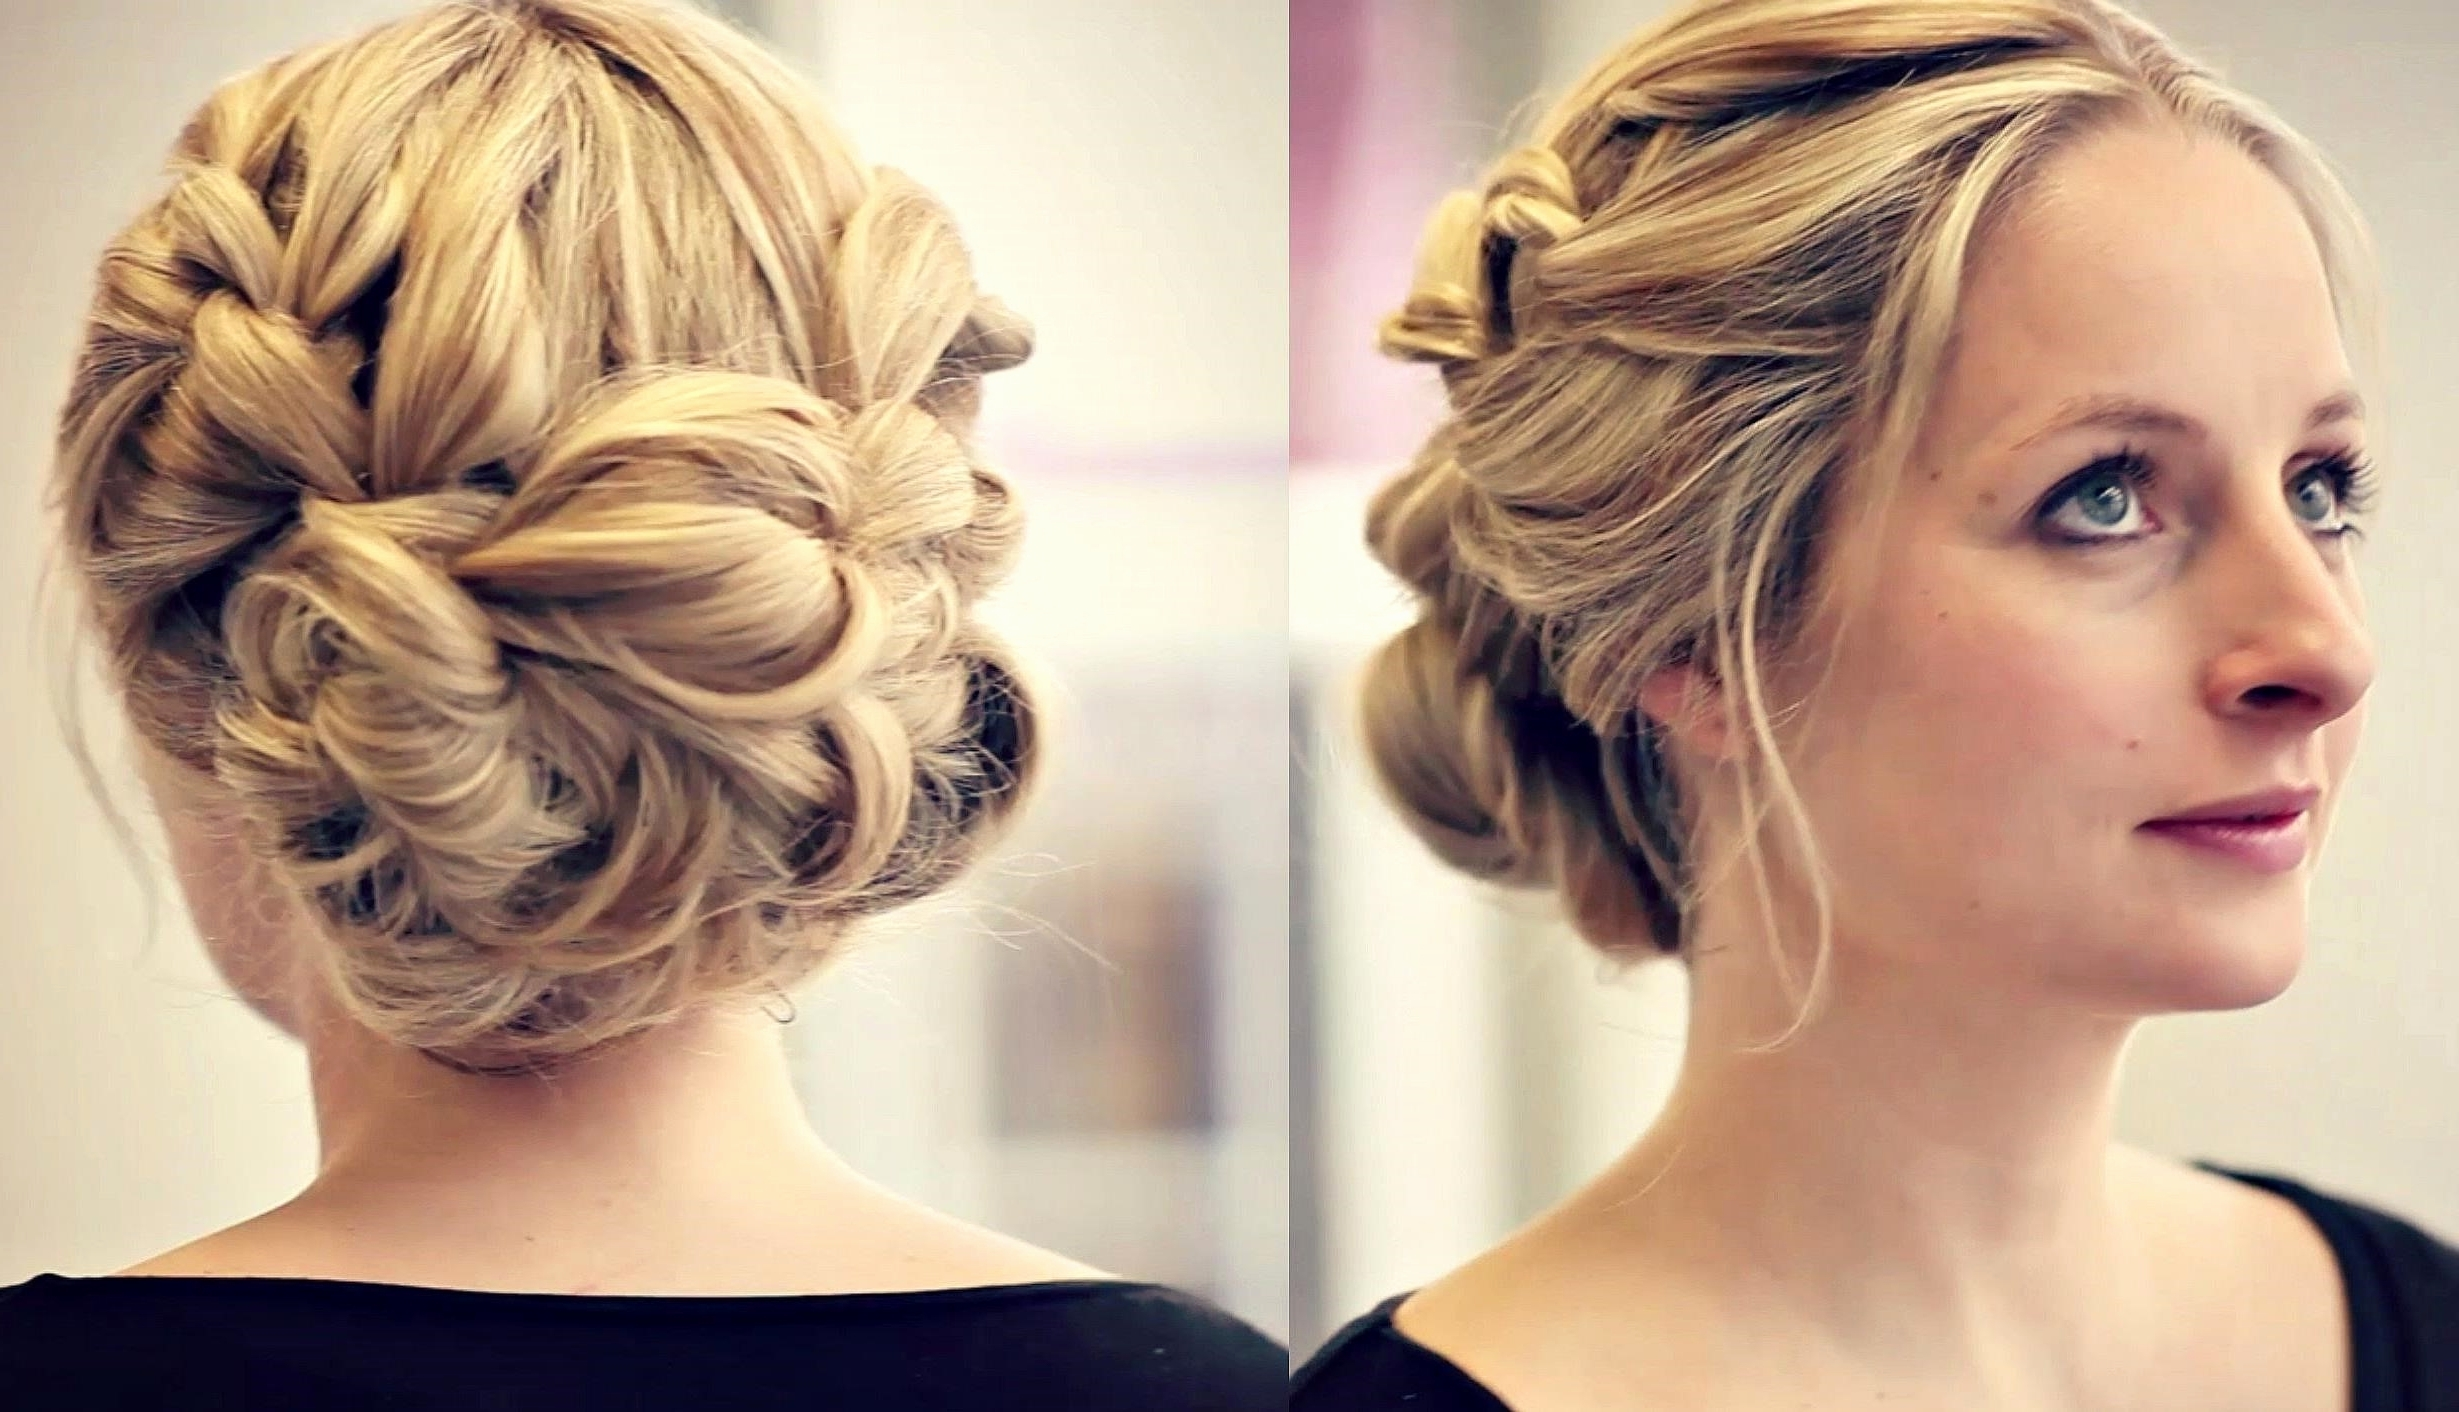 Cute Updo Hairstyles Short Hair Marvelous Short Wedding Hairstyles For Cute Updo Hairstyles For Short Hair (View 7 of 15)